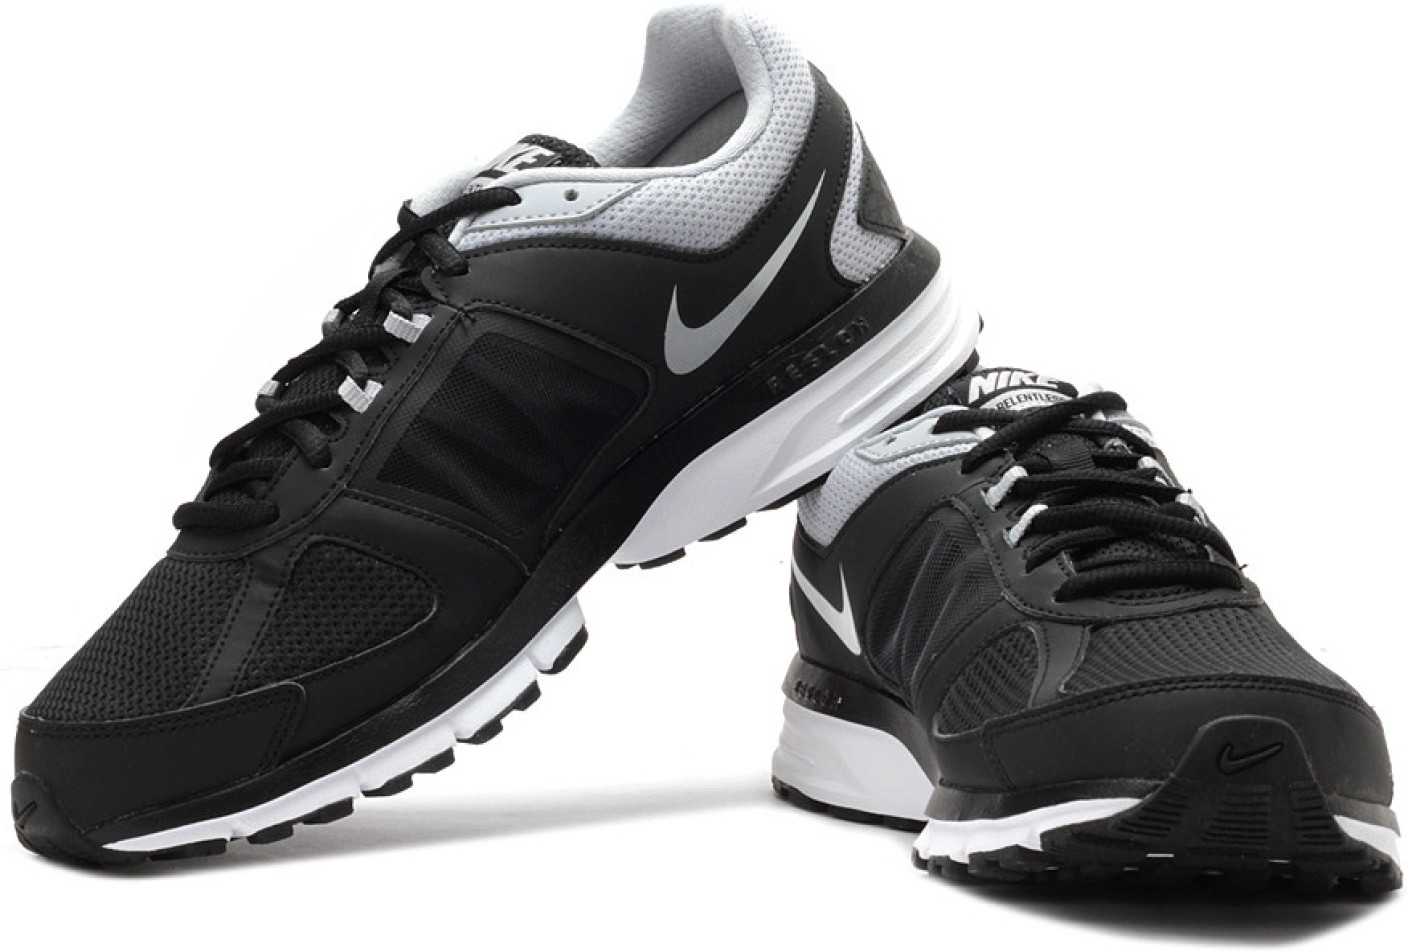 Nike Shoes Leather Laces